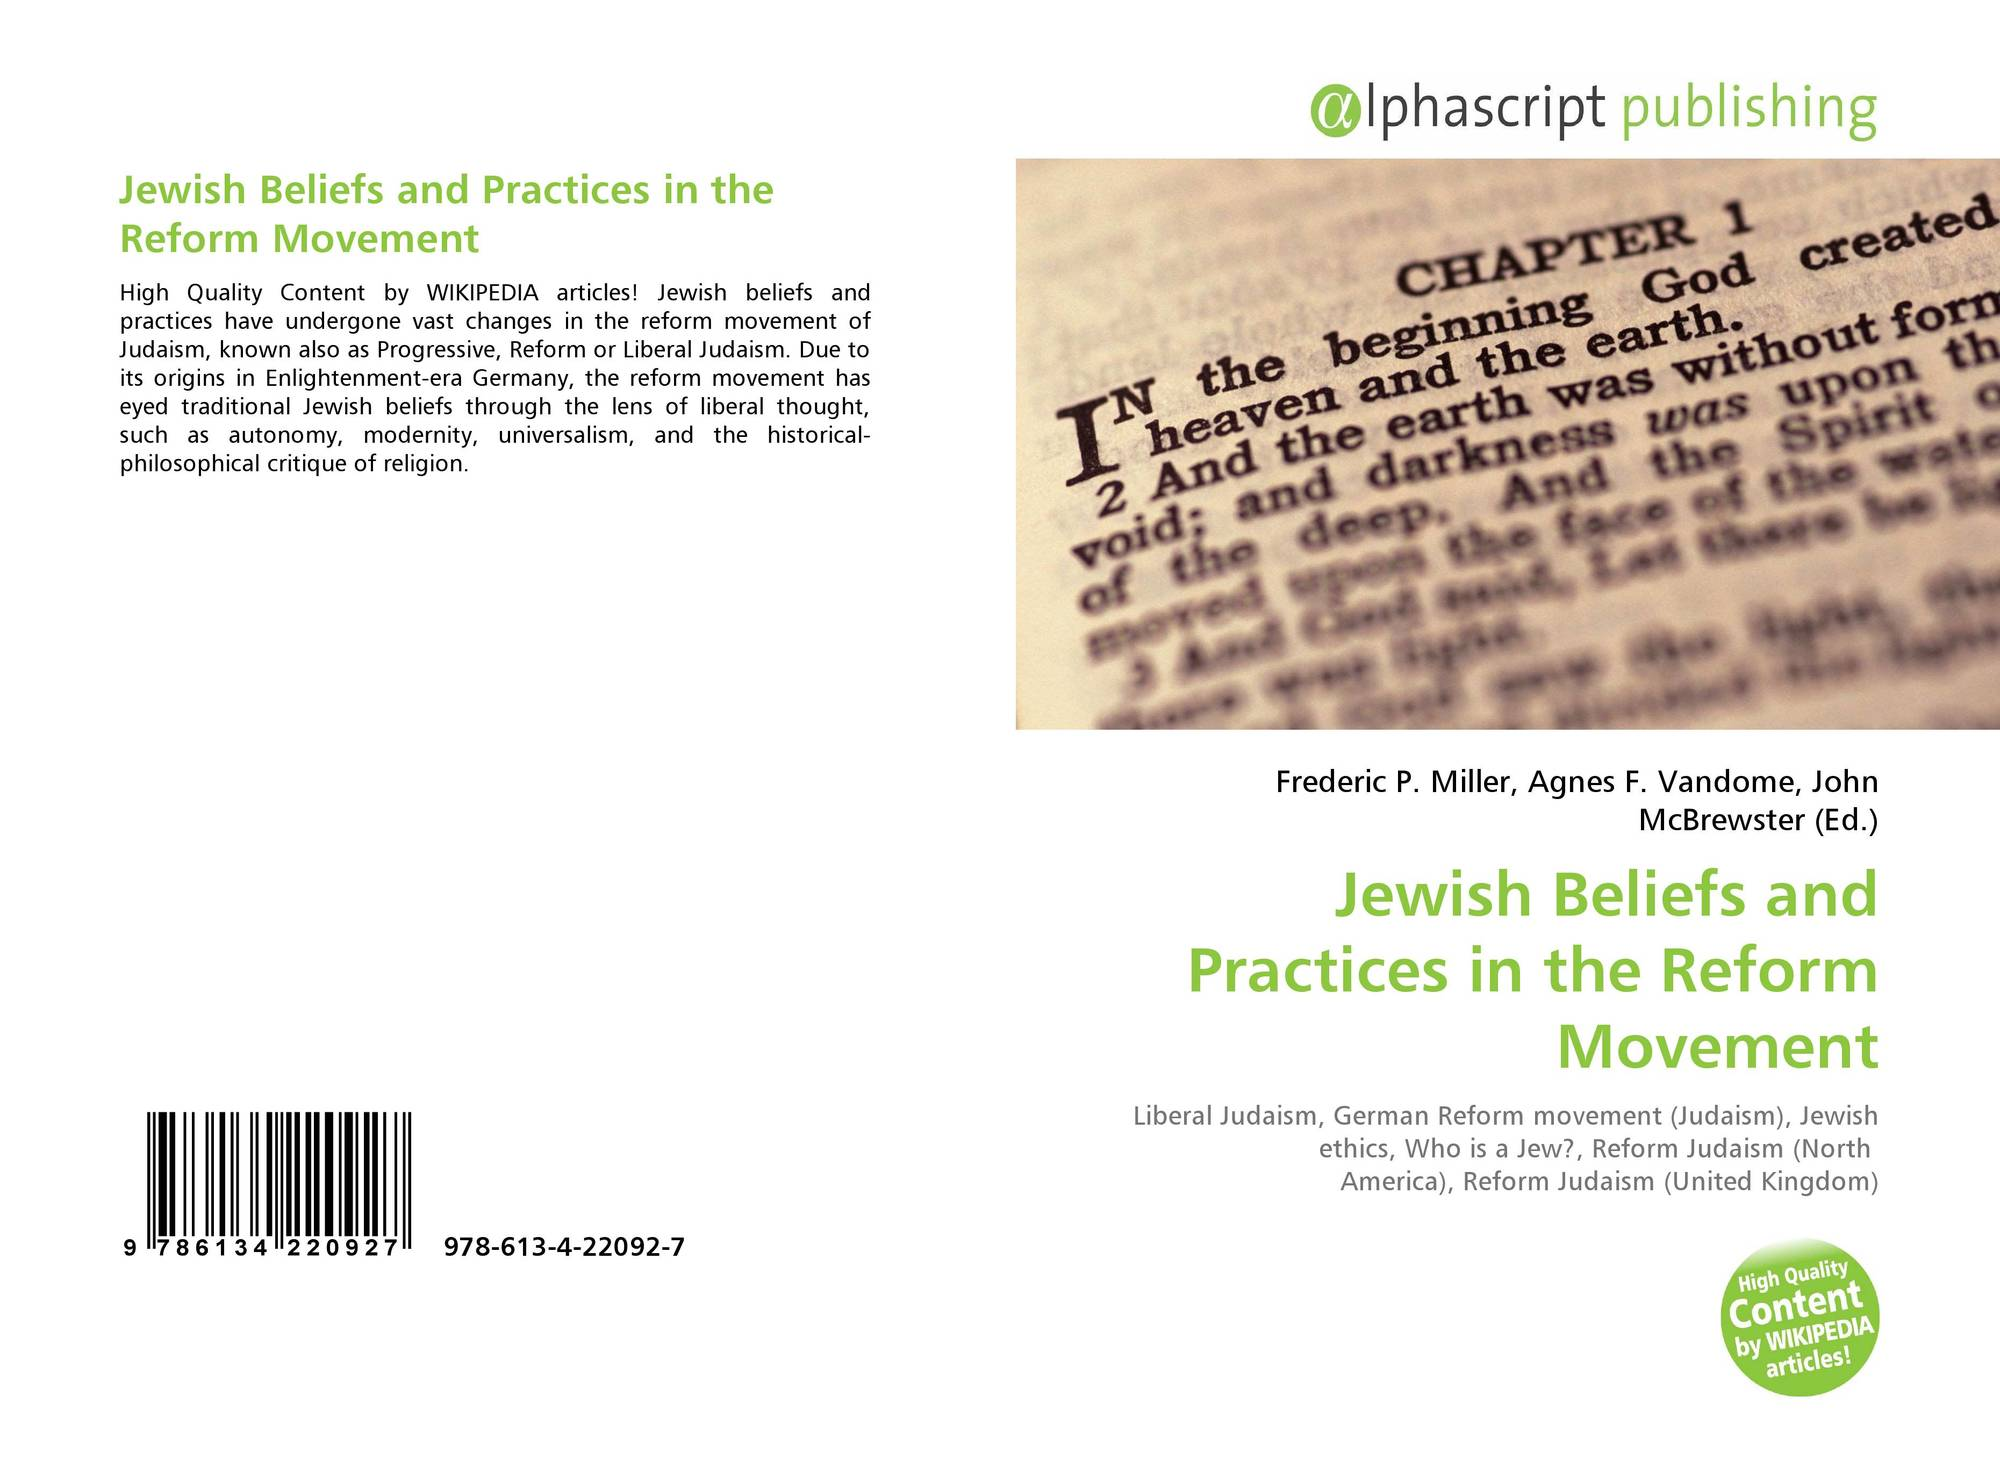 the roots of progressive judaism in germany